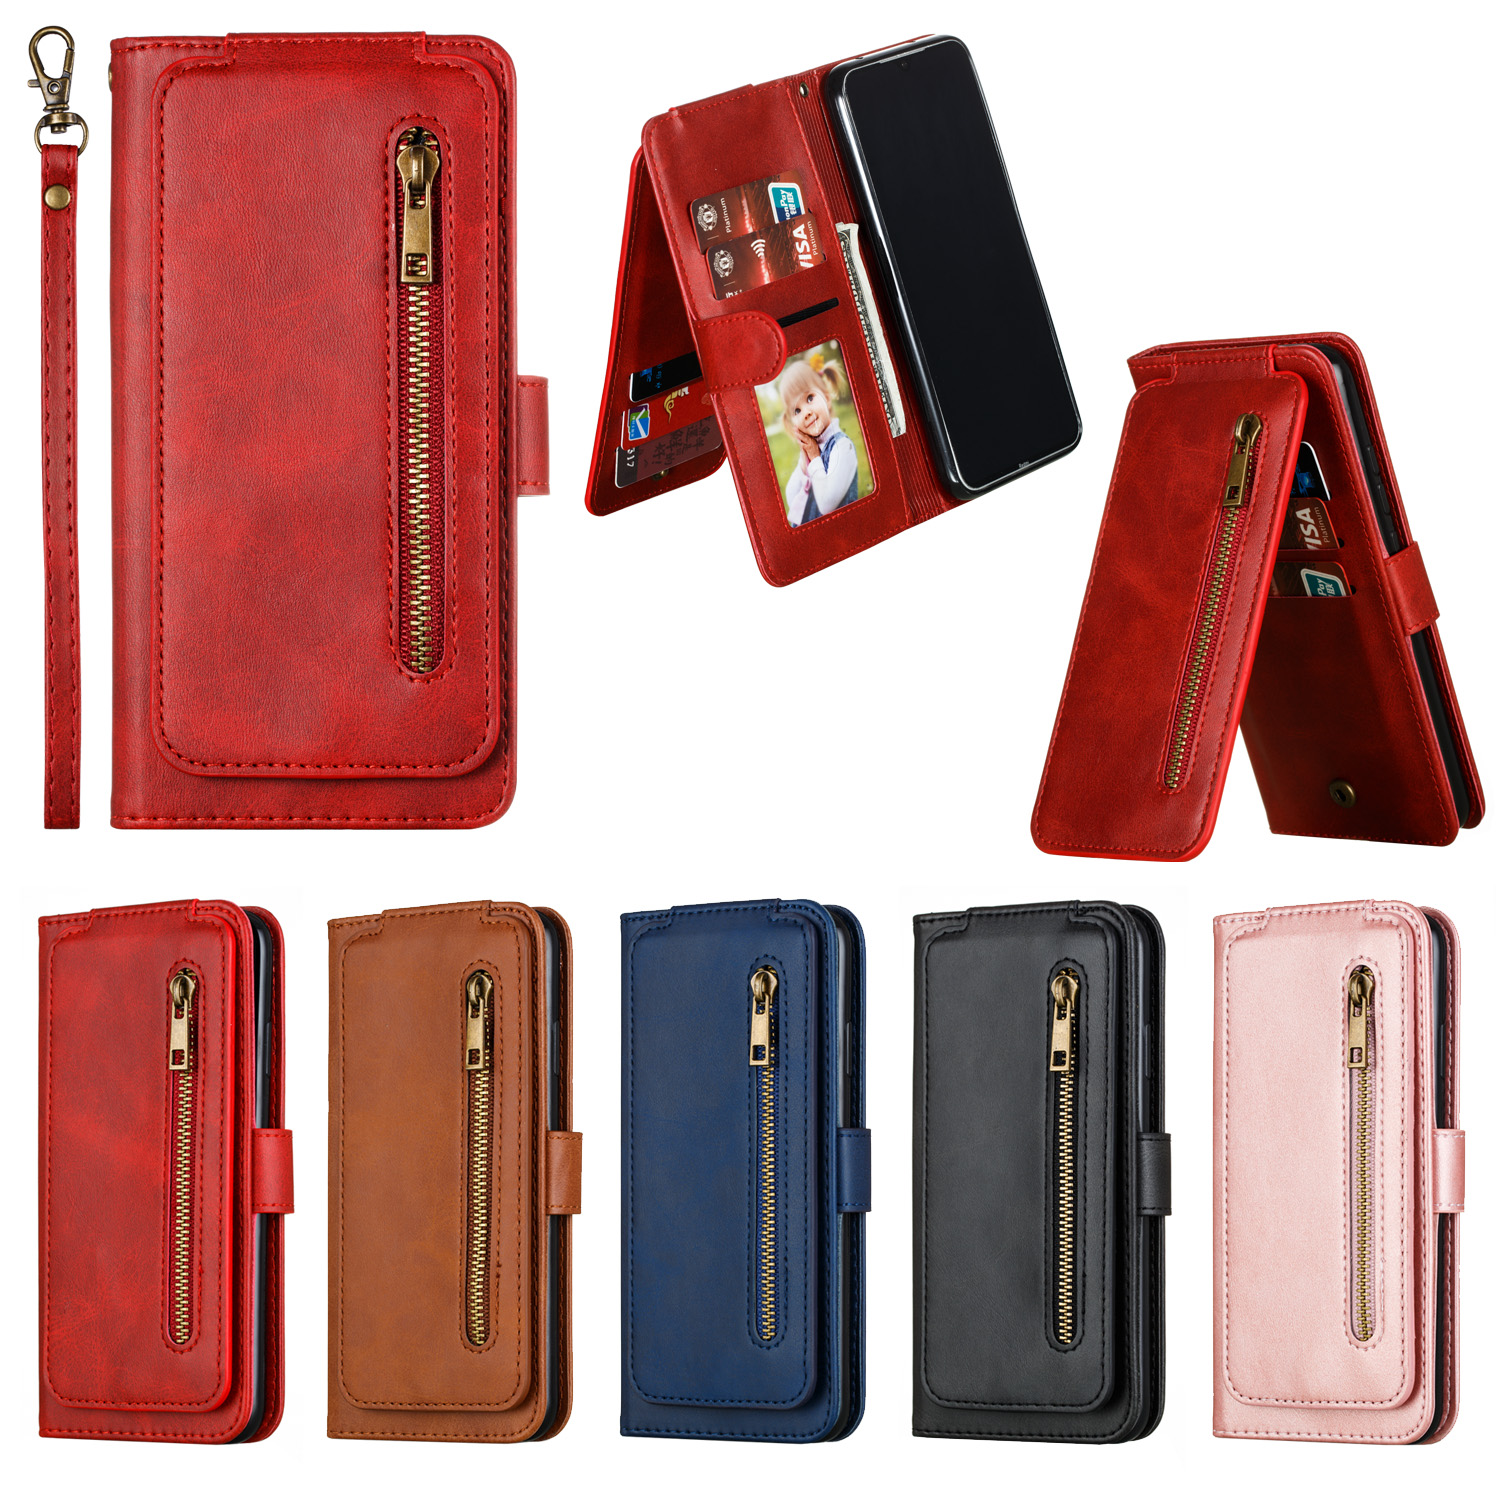 Cover For Xiaomi Redmi 7A <font><b>8</b></font> 8A K20 K20 Pro Note 7 7 Pro <font><b>8</b></font> <font><b>8</b></font> Pro Case PU Coque For Xiaomi Mi 9T 9T Pro CC9e A3 Case Cover Capa image